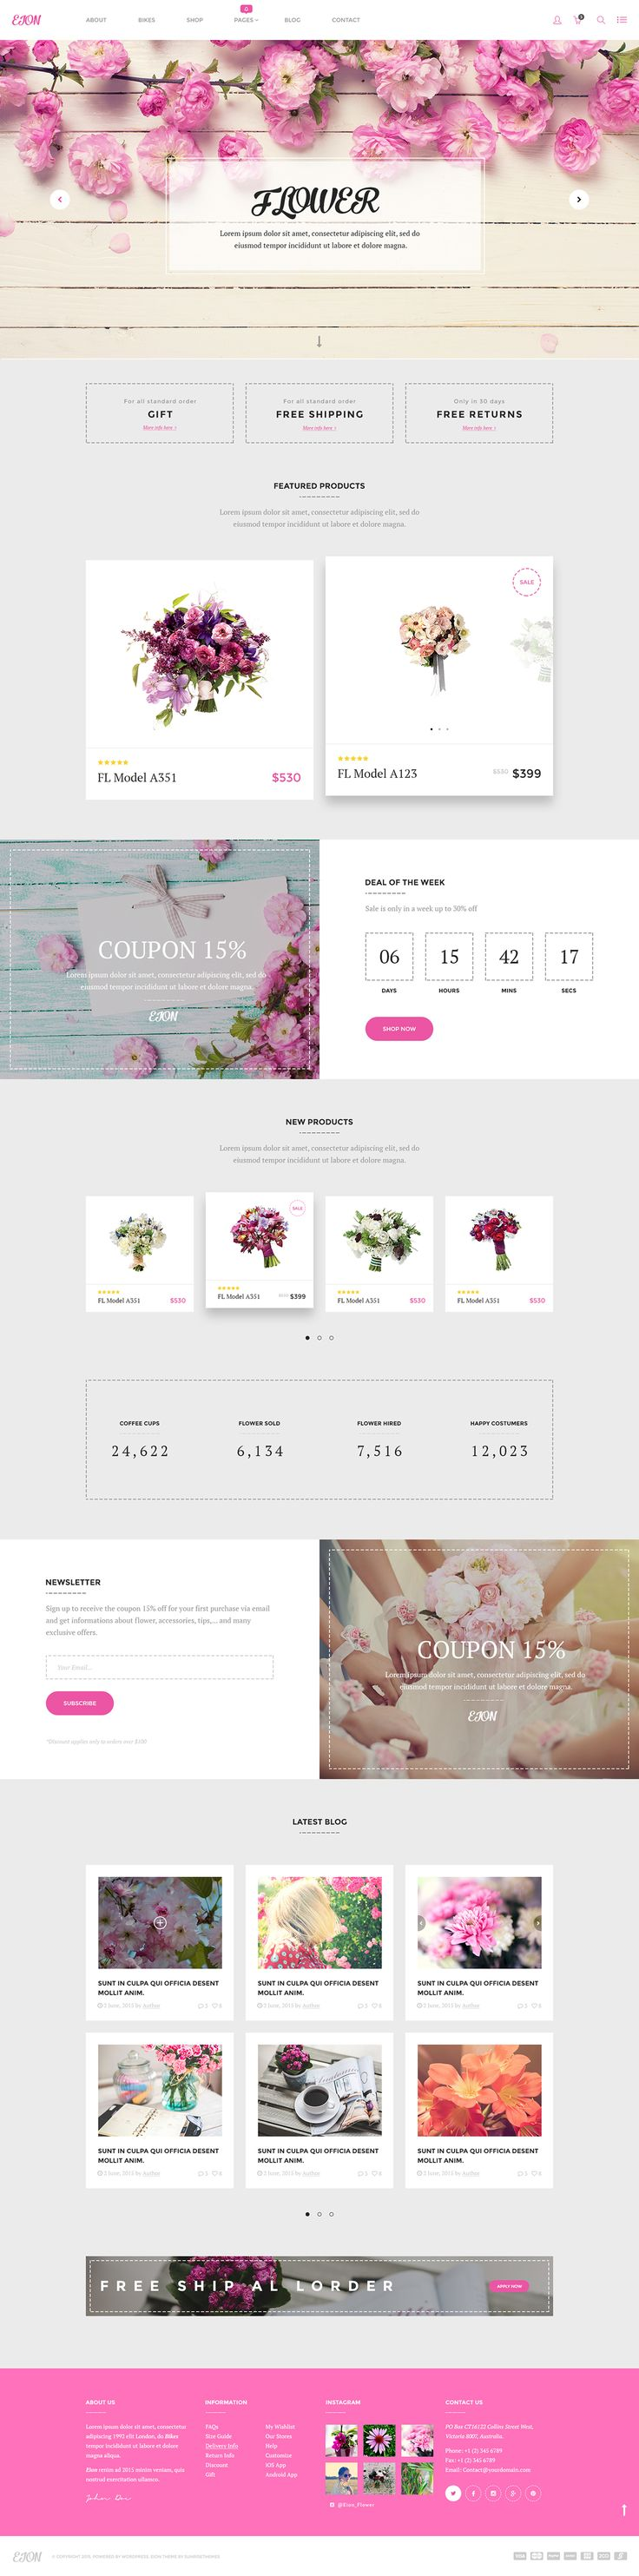 Free - EION - PSD Template for flower shops on Behance